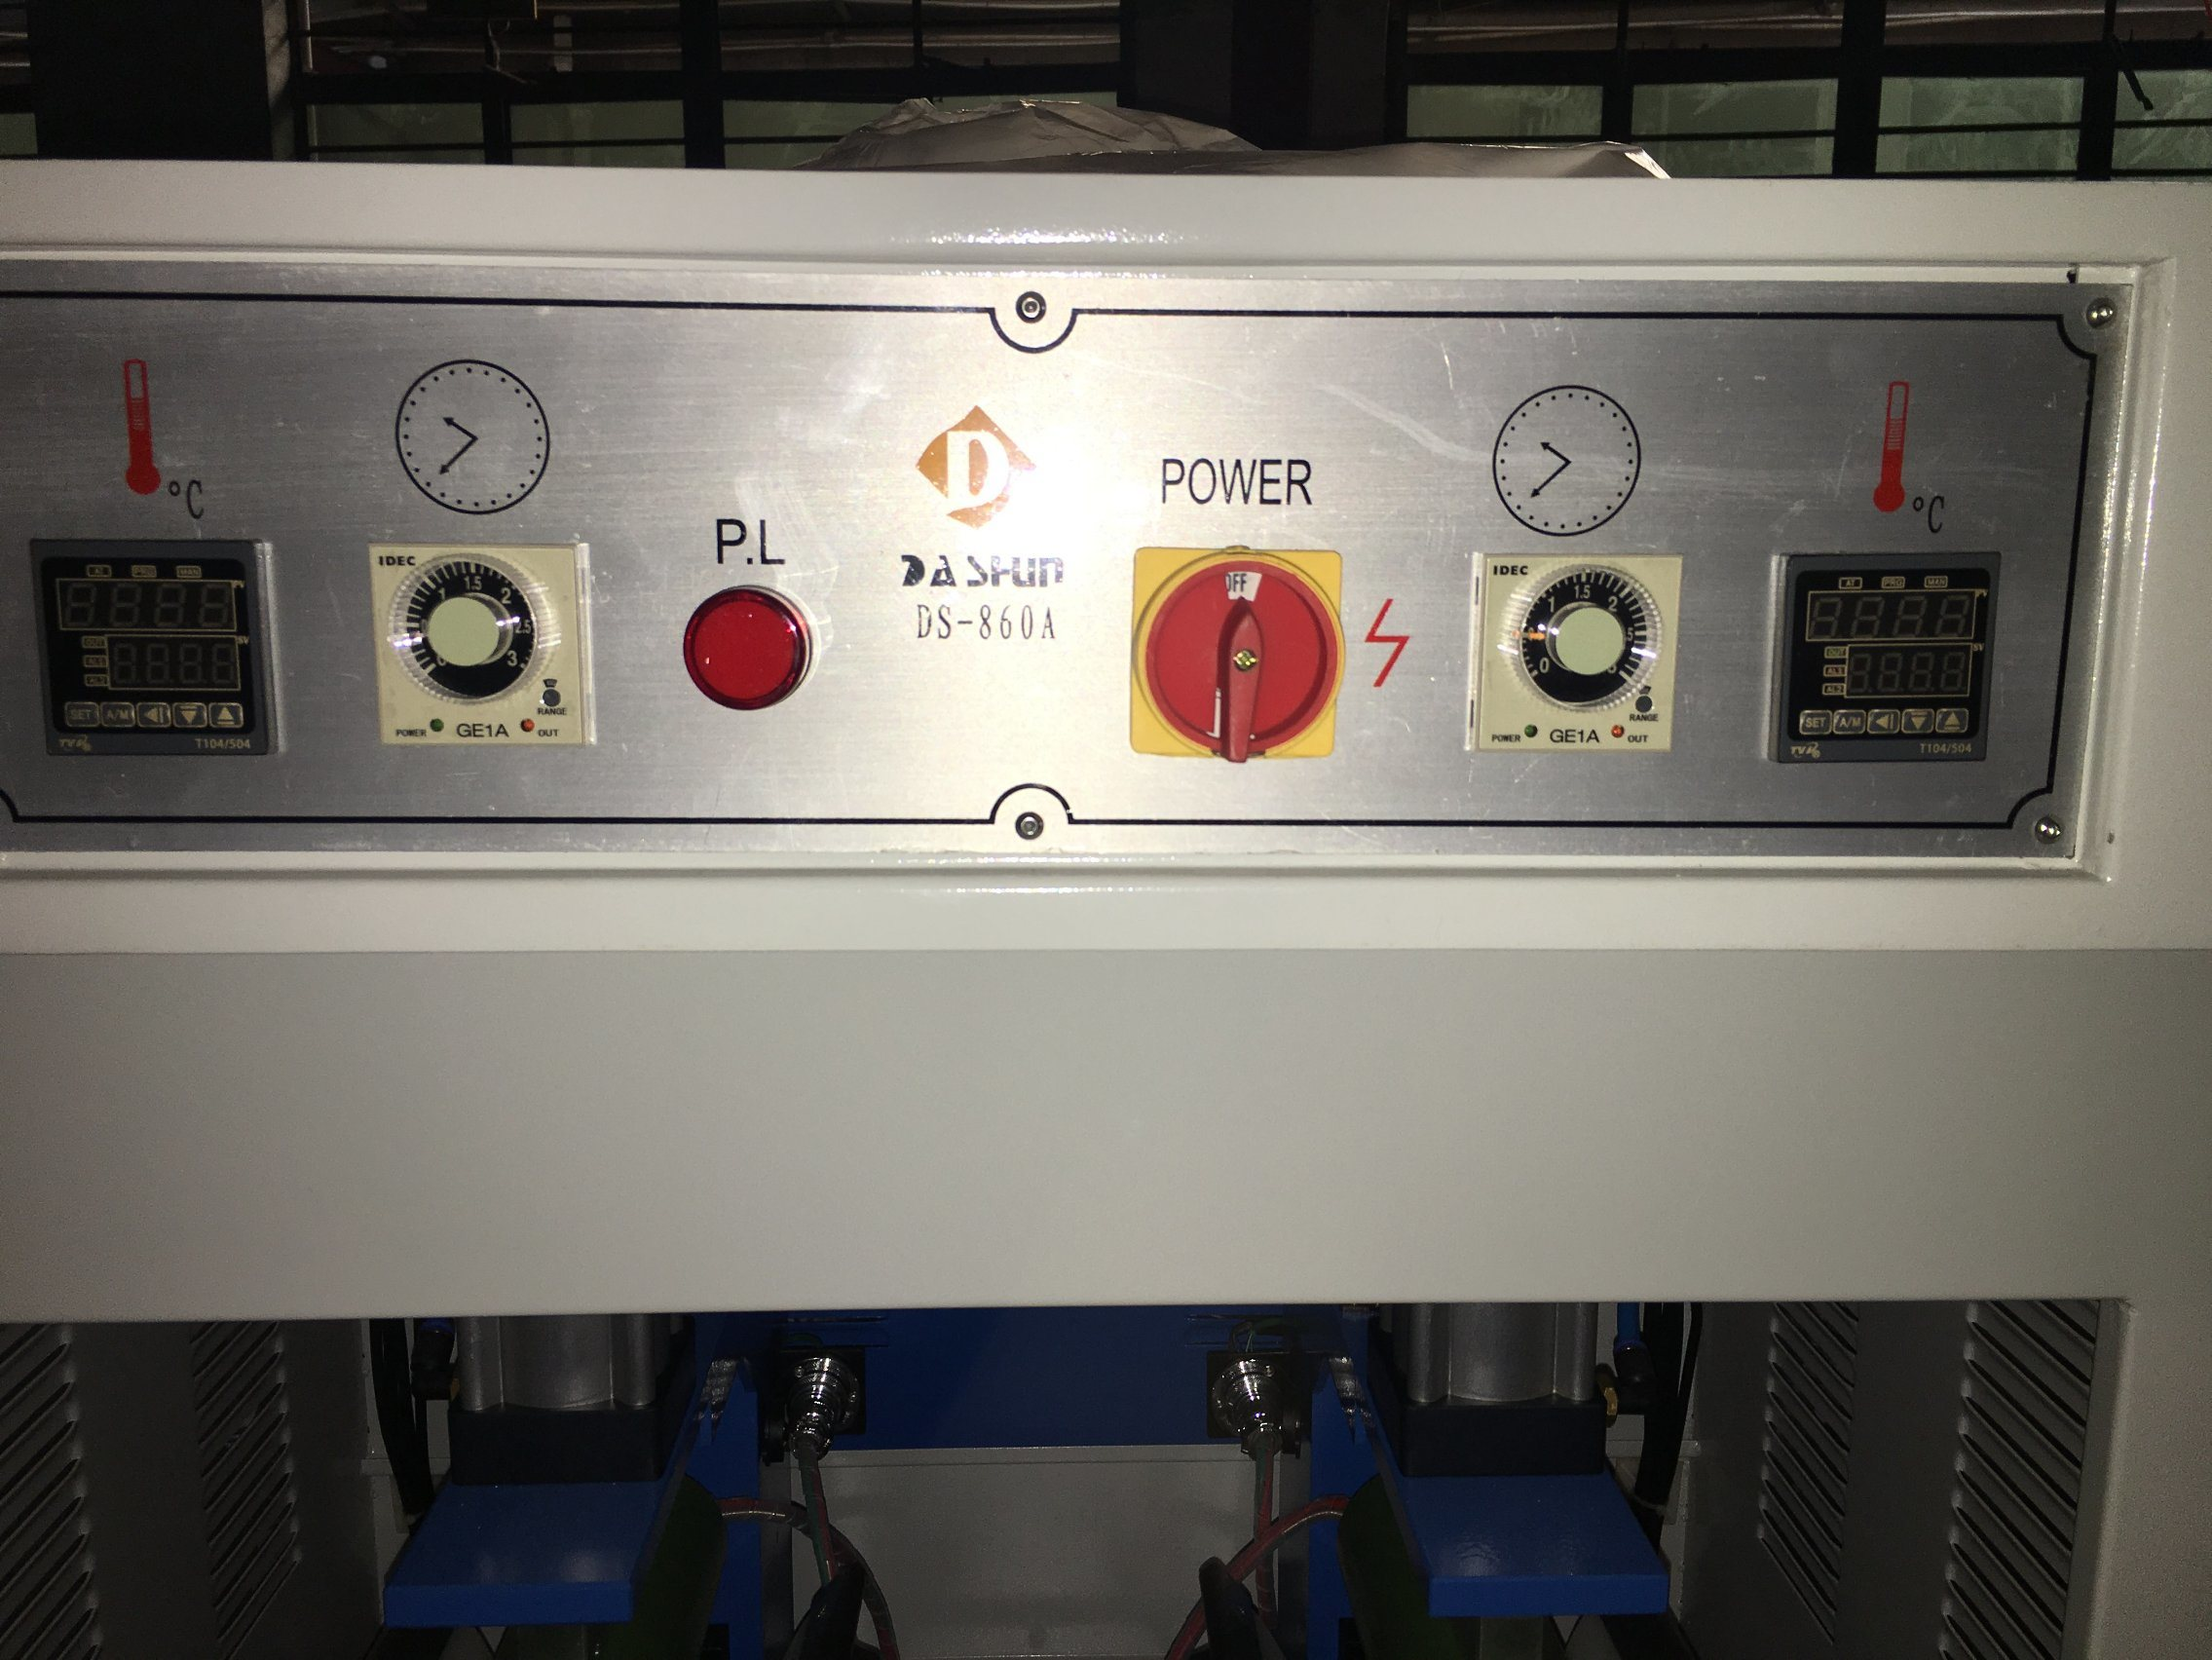 Ds-860A Two-Station Toe Cover Fusing Machine for Shoe